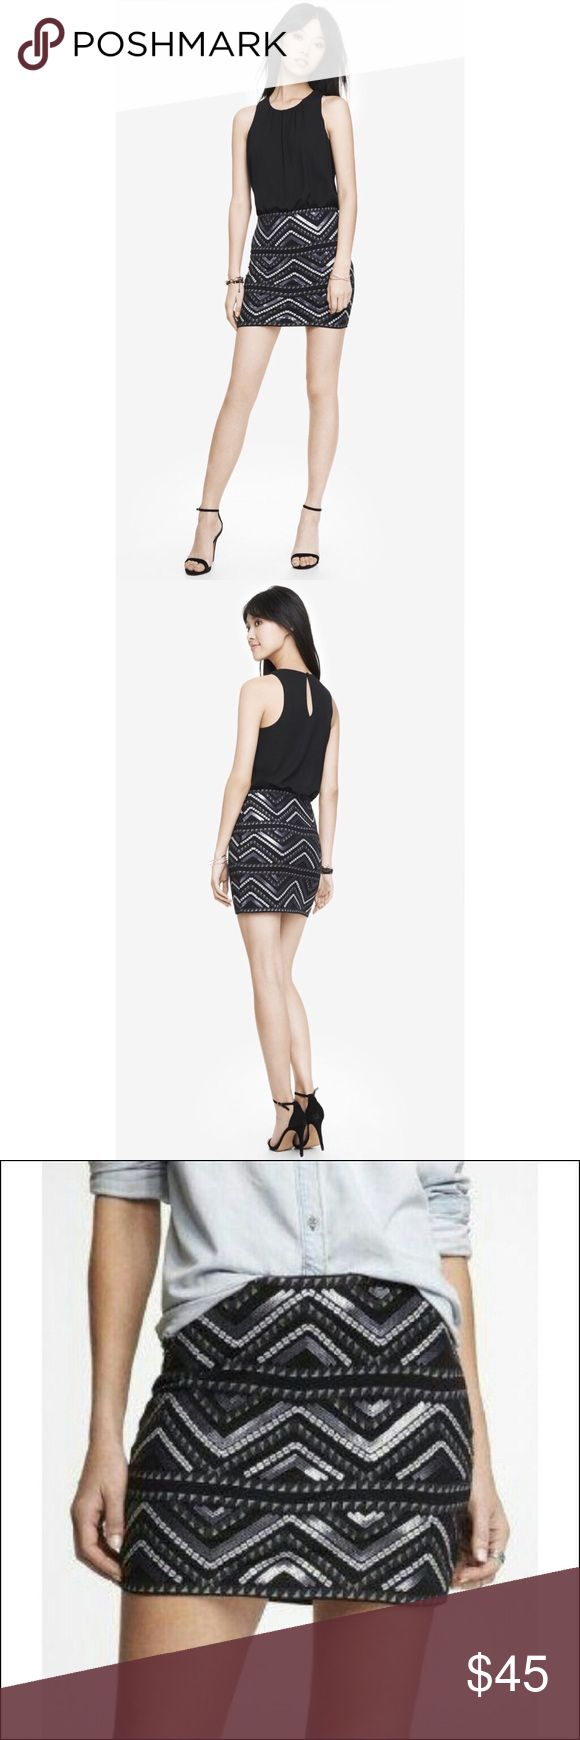 ✨ Women's Black Aztec Sequin 2-In-1 Mini Skirt✨ ✨ Black, white and silver sequins - it's a combo that's perfect for nighttime action with a solid black cropped top as a companion. Or try this stretch cotton mini with a denim button-down and T-straps for some festing under the sun.  Elastic waist, slip-on styling All-over Aztec patterned sequin embellishment Lined Straight hem, hits above the knee Cotton/Spandex; Polyester lining Hand wash Imported✨ Express Skirts Mini